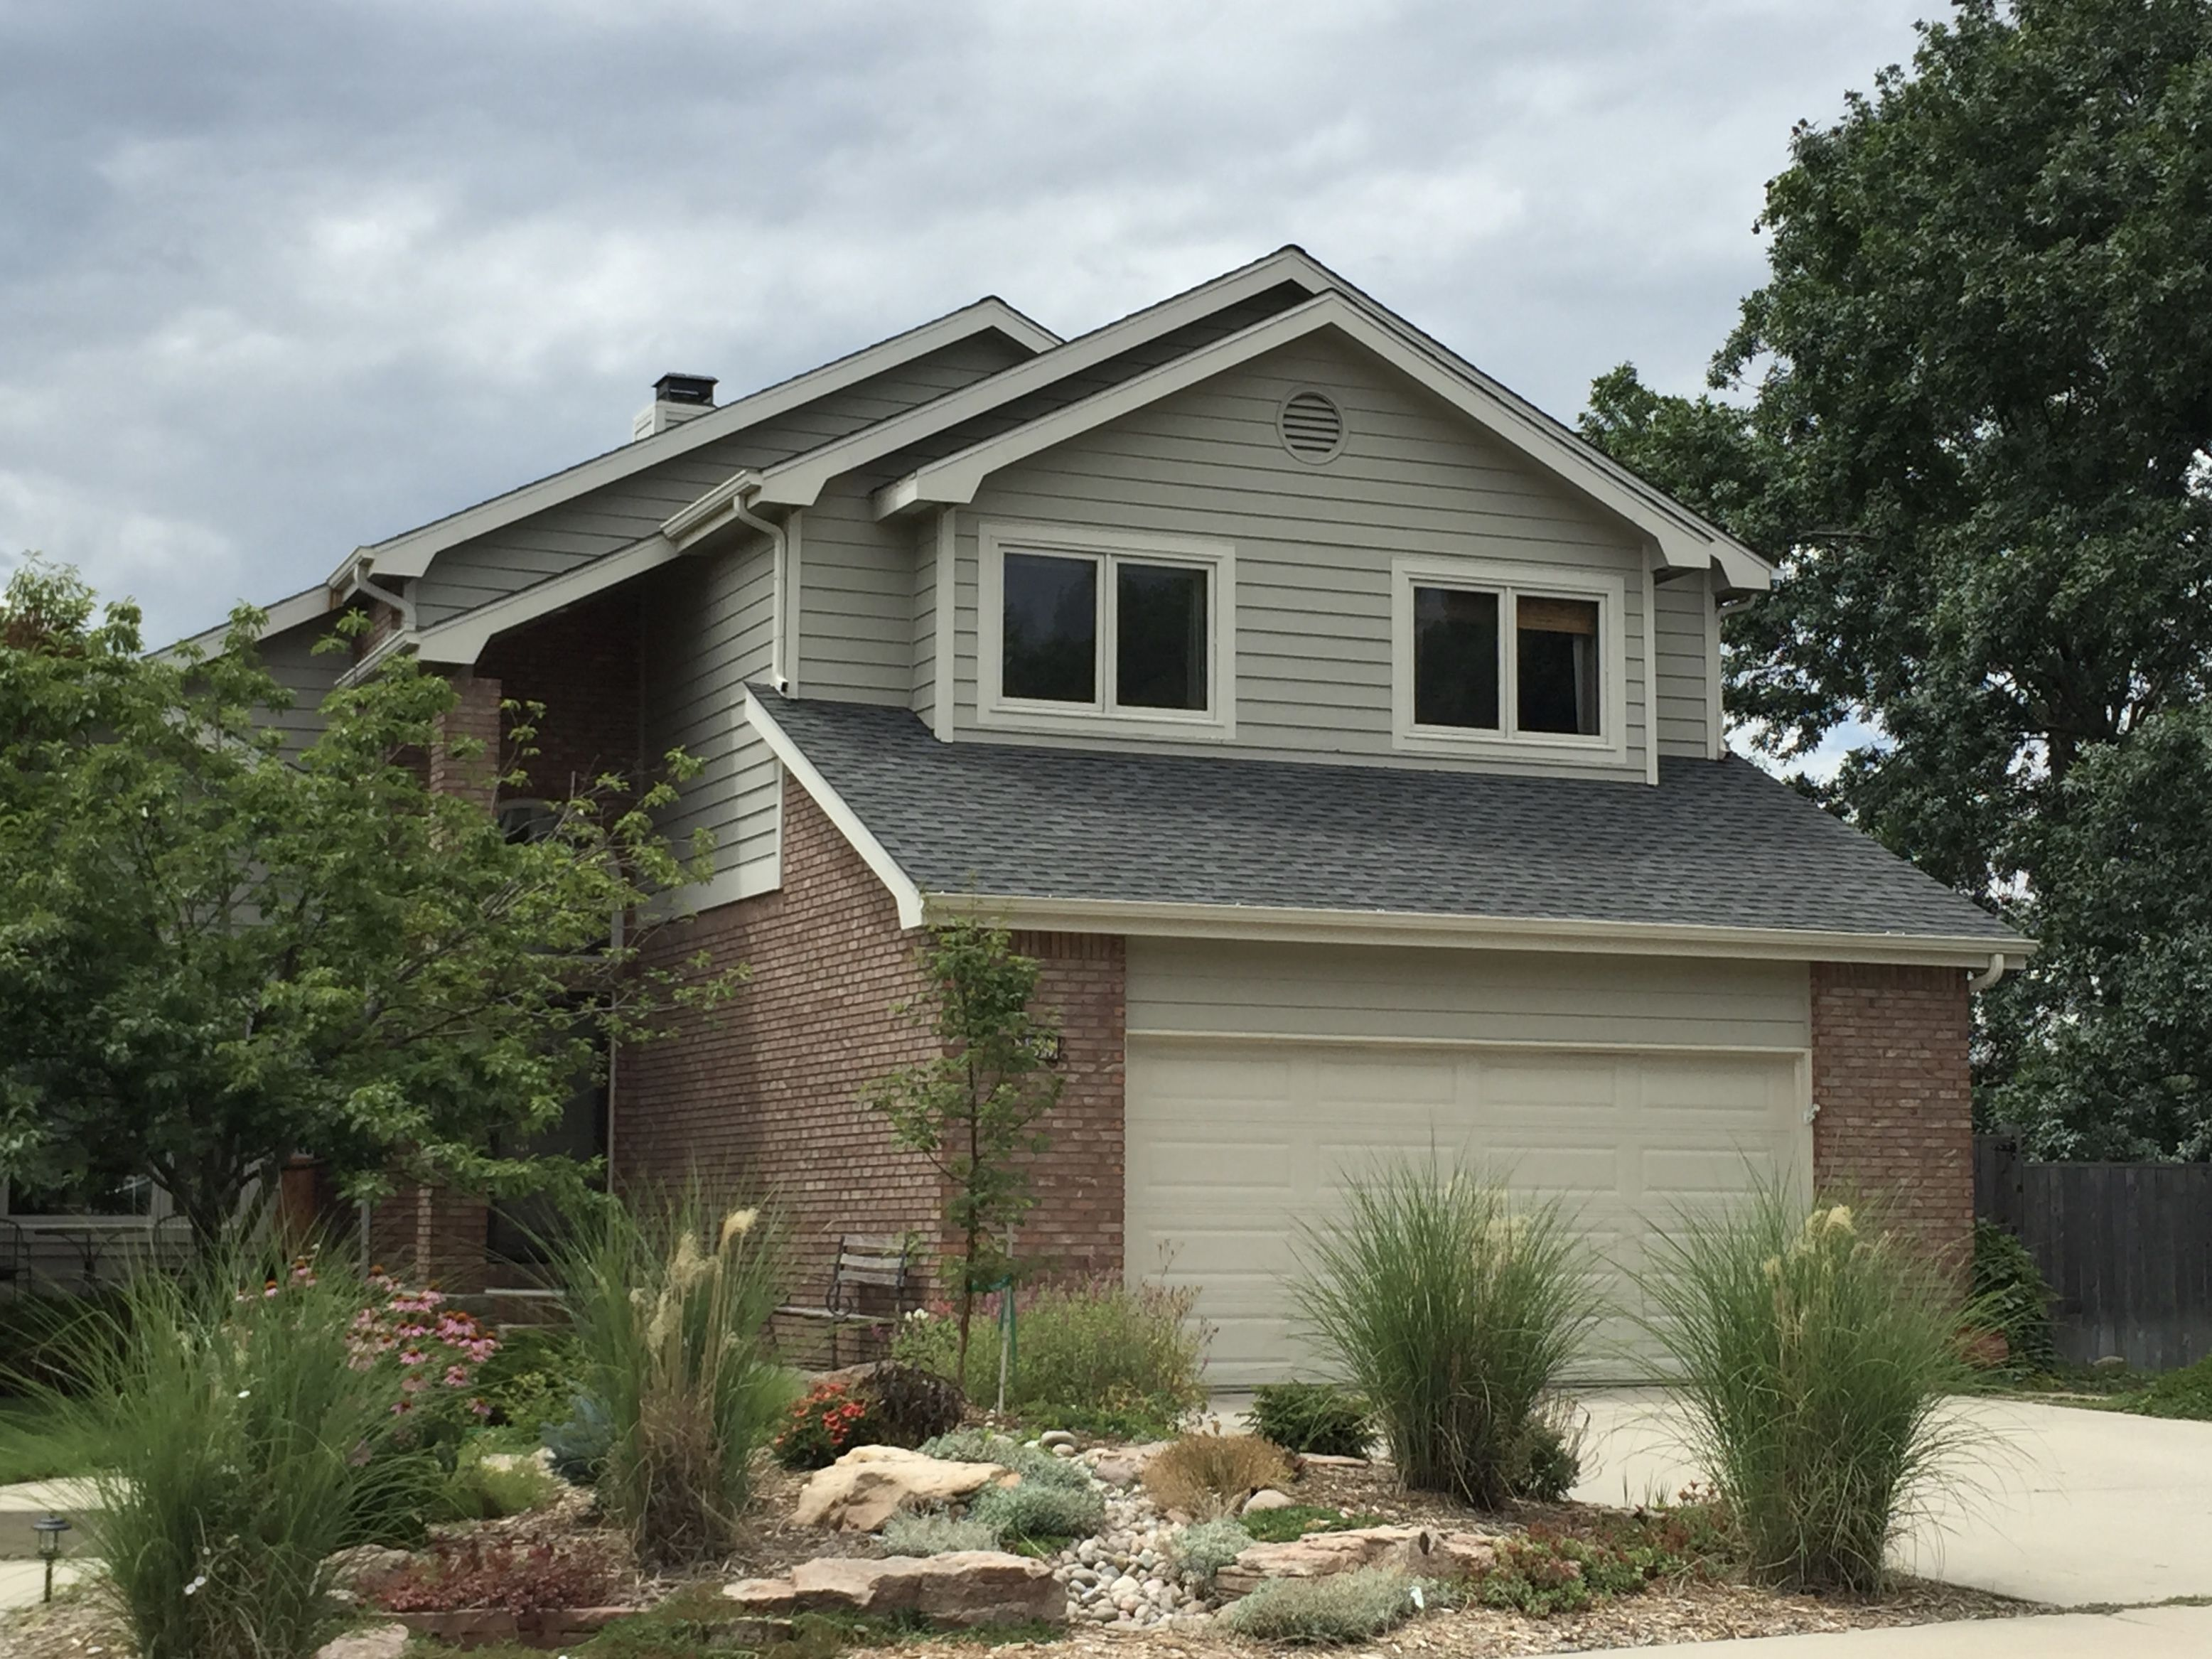 This House In Fort Collins Has Weathered Wood Shingles On It From The Gaf Timberline Hd Shingle Line House Exterior Wood Shingles Weathered Wood